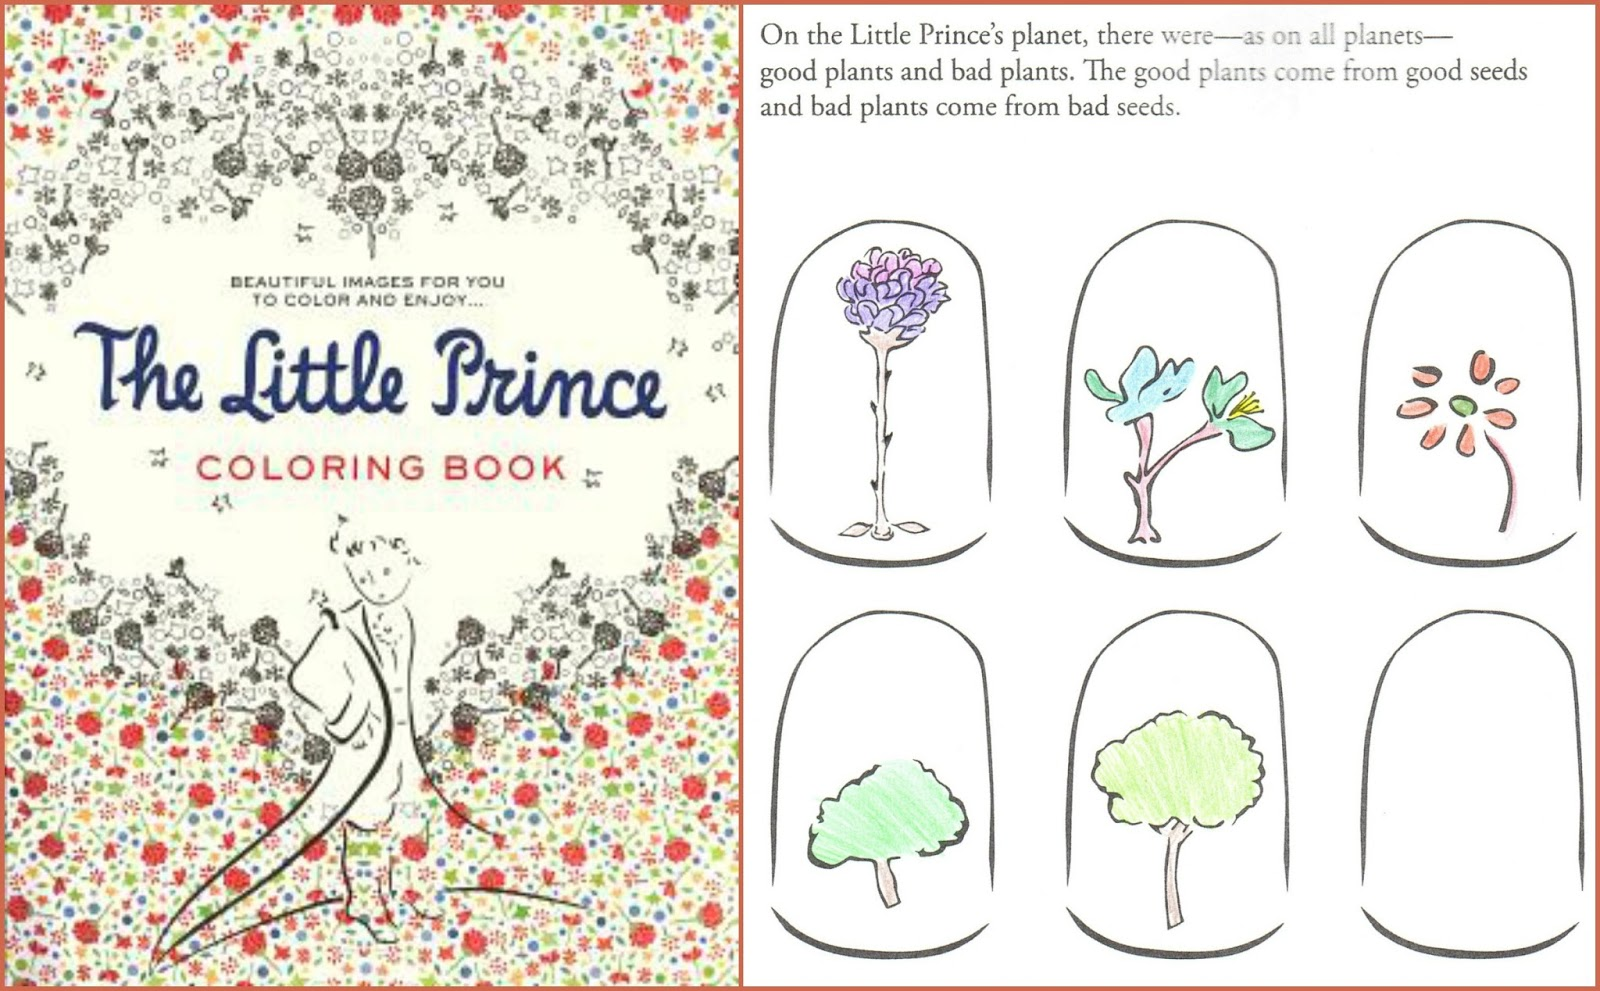 beth fish reads adult coloring books a twist the little prince coloring book